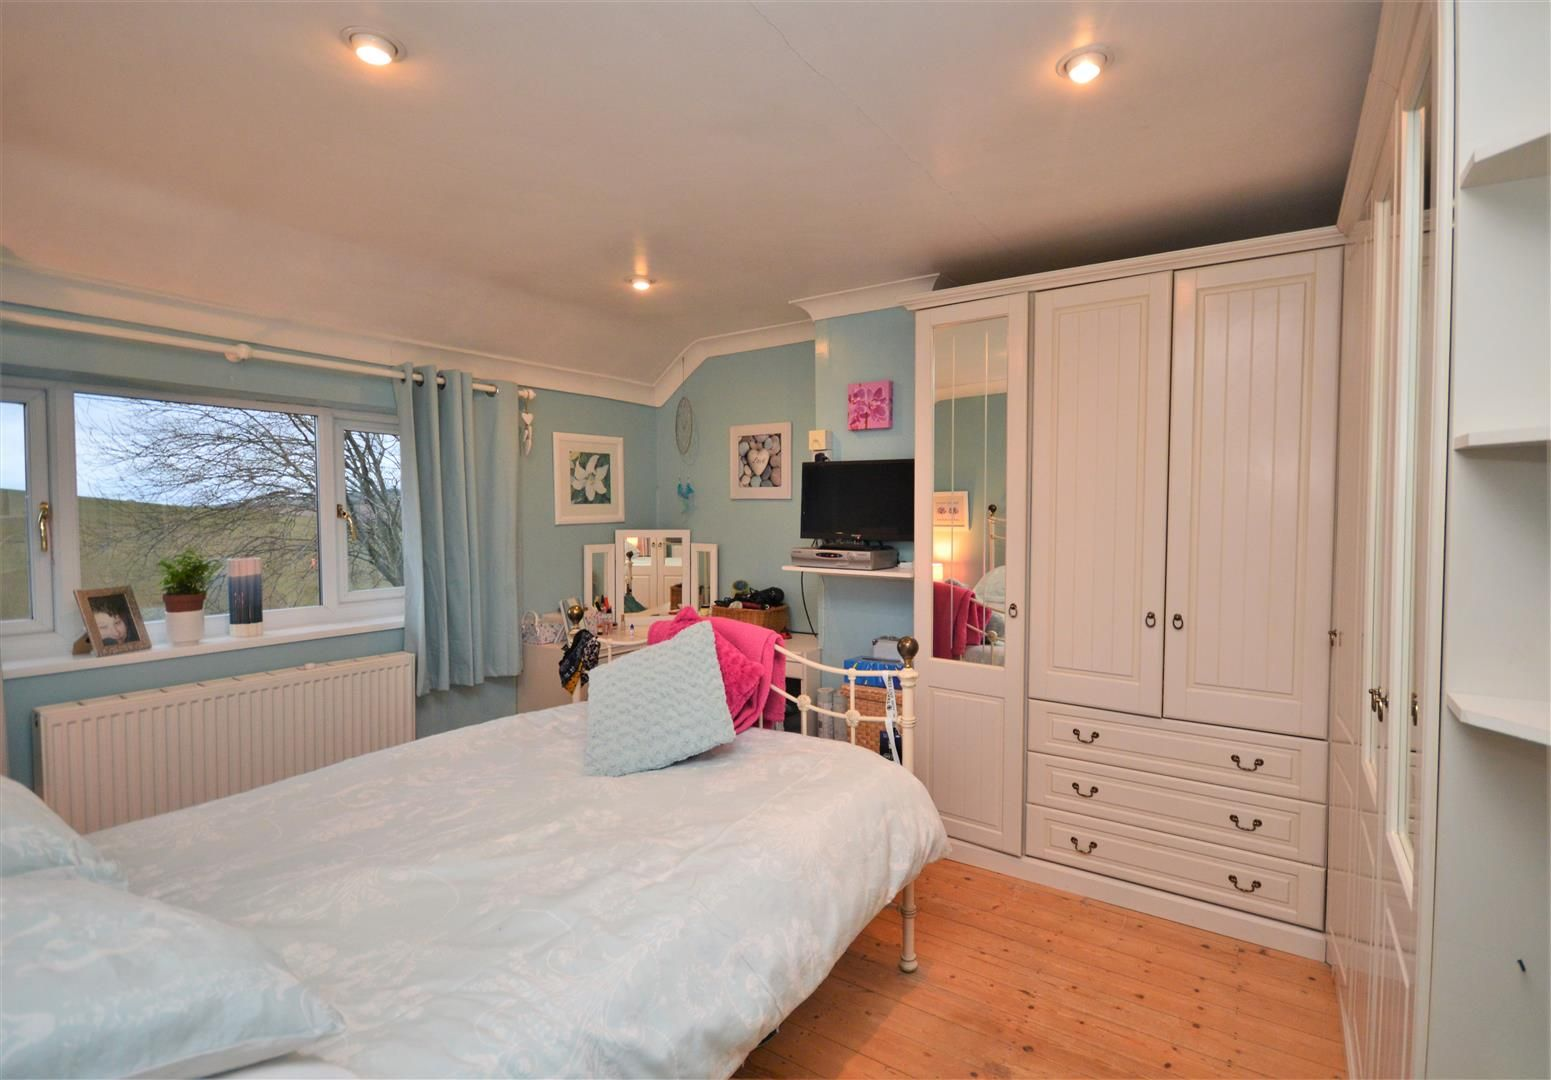 3 bed semi-detached for sale in Much Birch  - Property Image 7